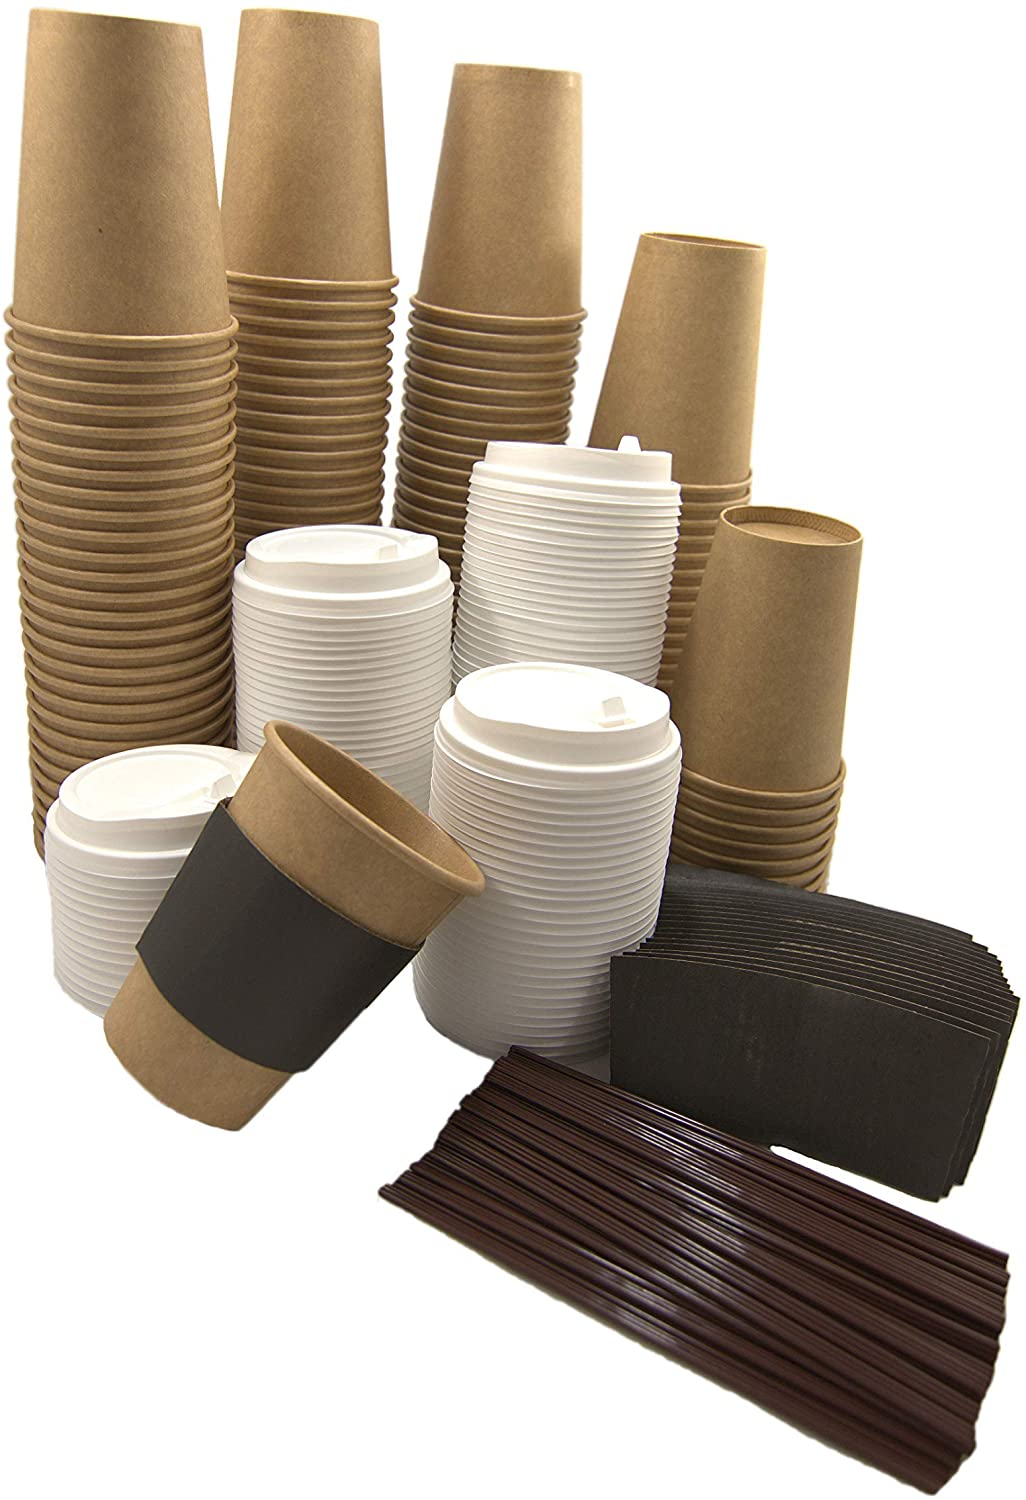 Calm Grounds to Go Disposable Hot Beverage Paper Coffee Cups with Lids, 12 oz, 120 count